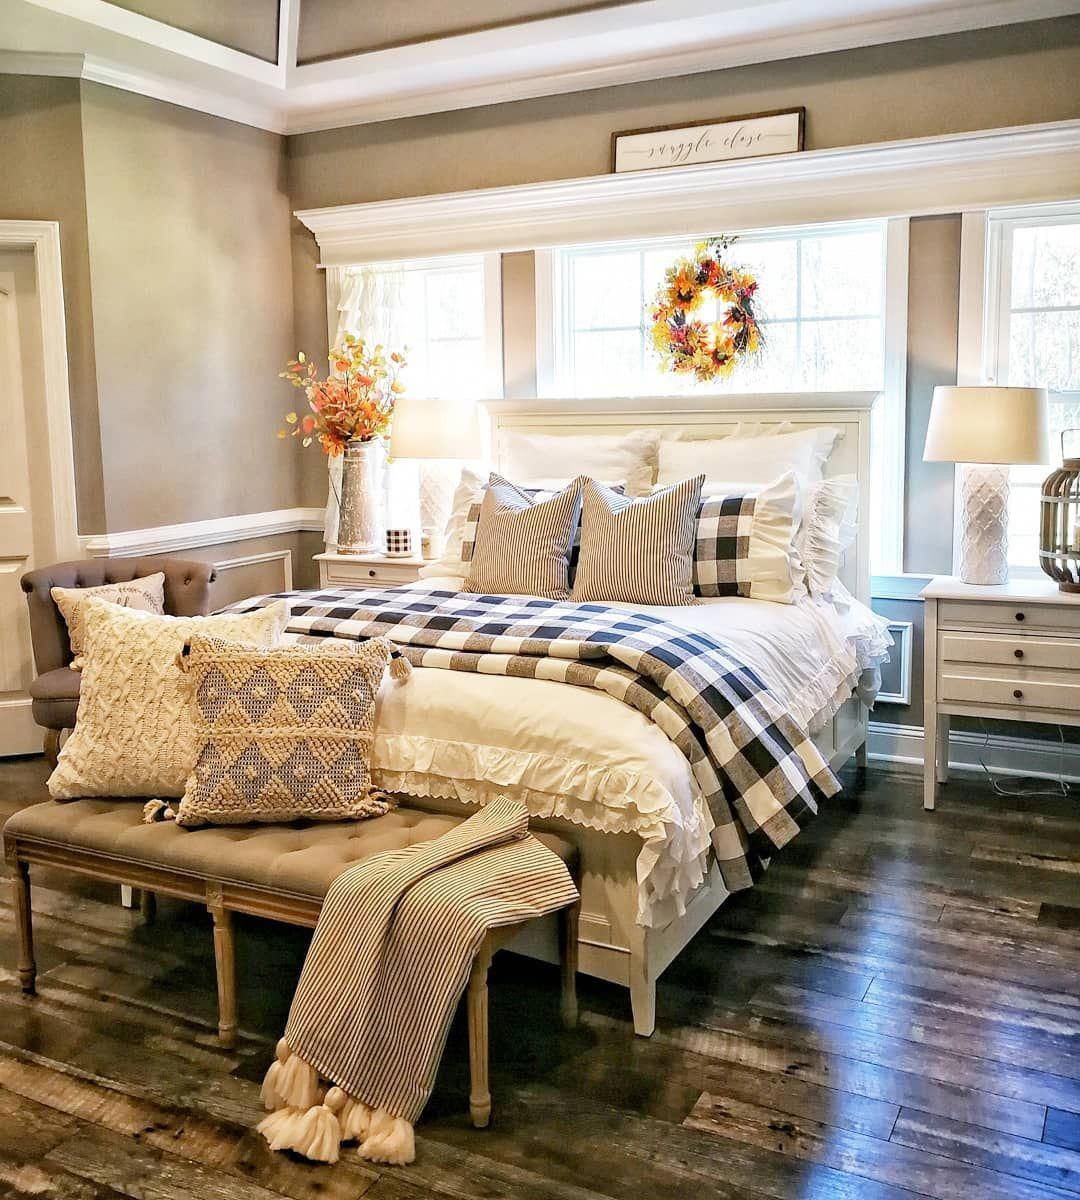 rusticbedroom Master bedrooms decor, Remodel bedroom